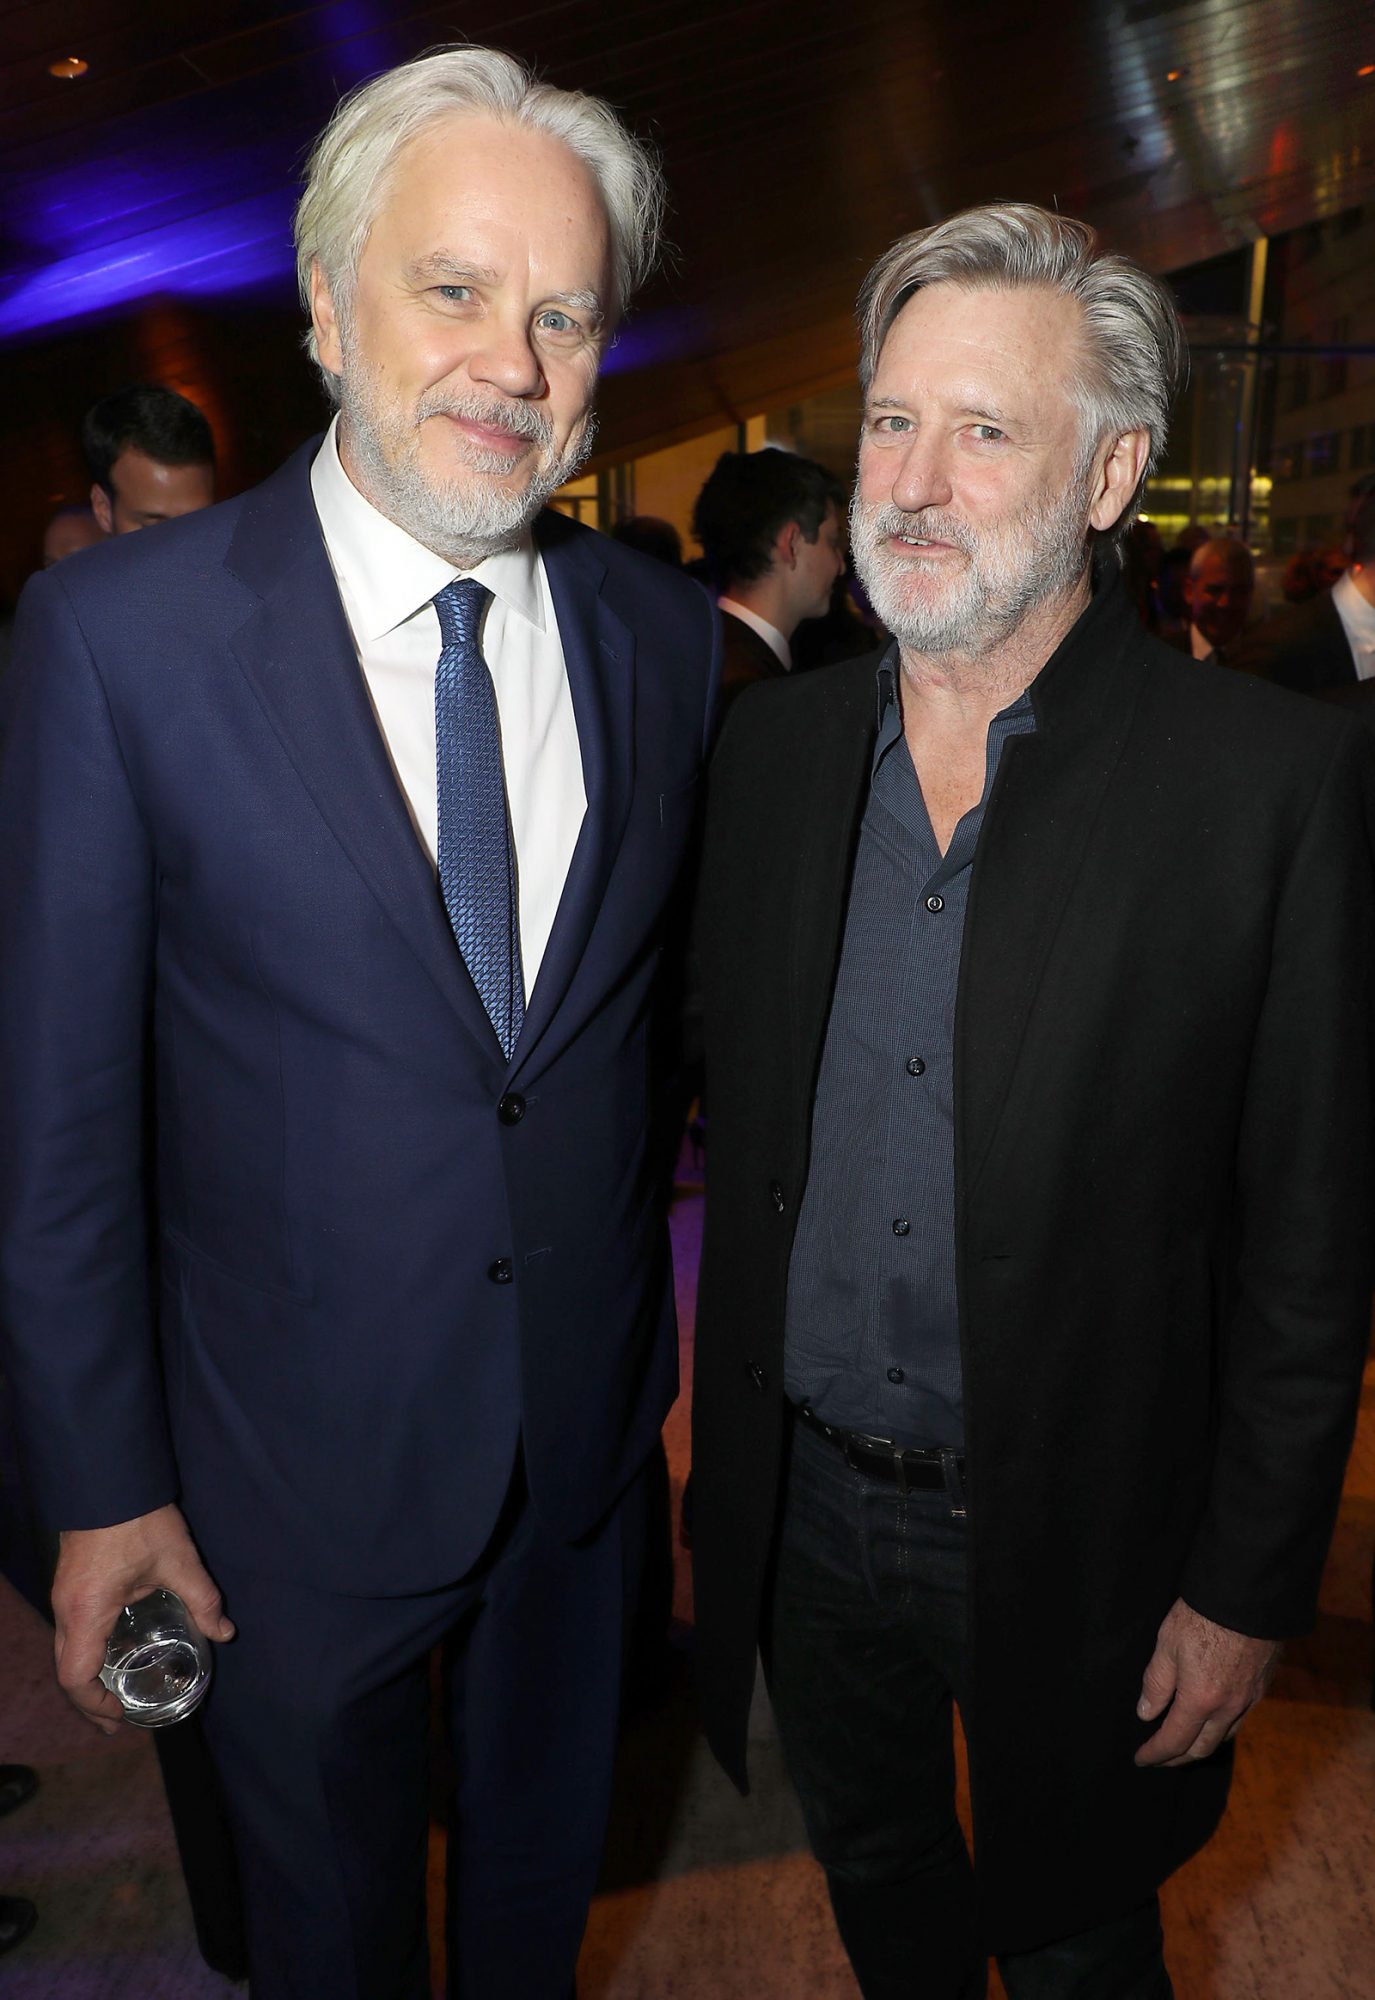 Tim Robbins, Bill Pullman New York Premiere of Focus Features' film 'Dark Waters' - After Party held at Lincoln Ristorante, USA - 12 Nov 2019